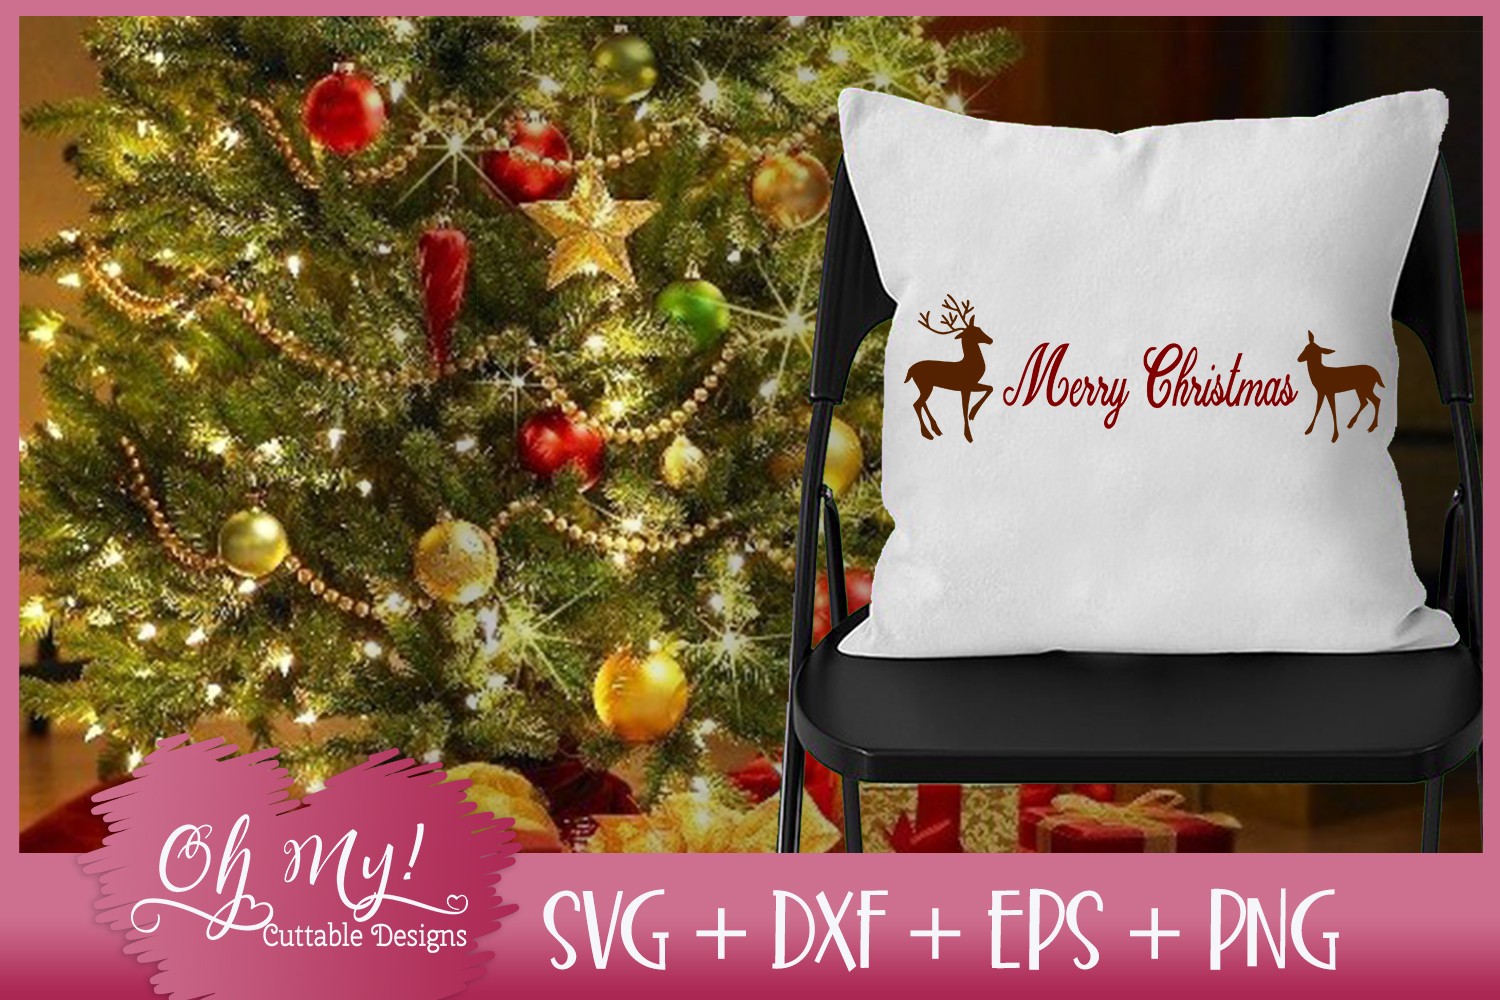 Merry Christmas Reindeer - SVG DXF EPS PNG example image 3